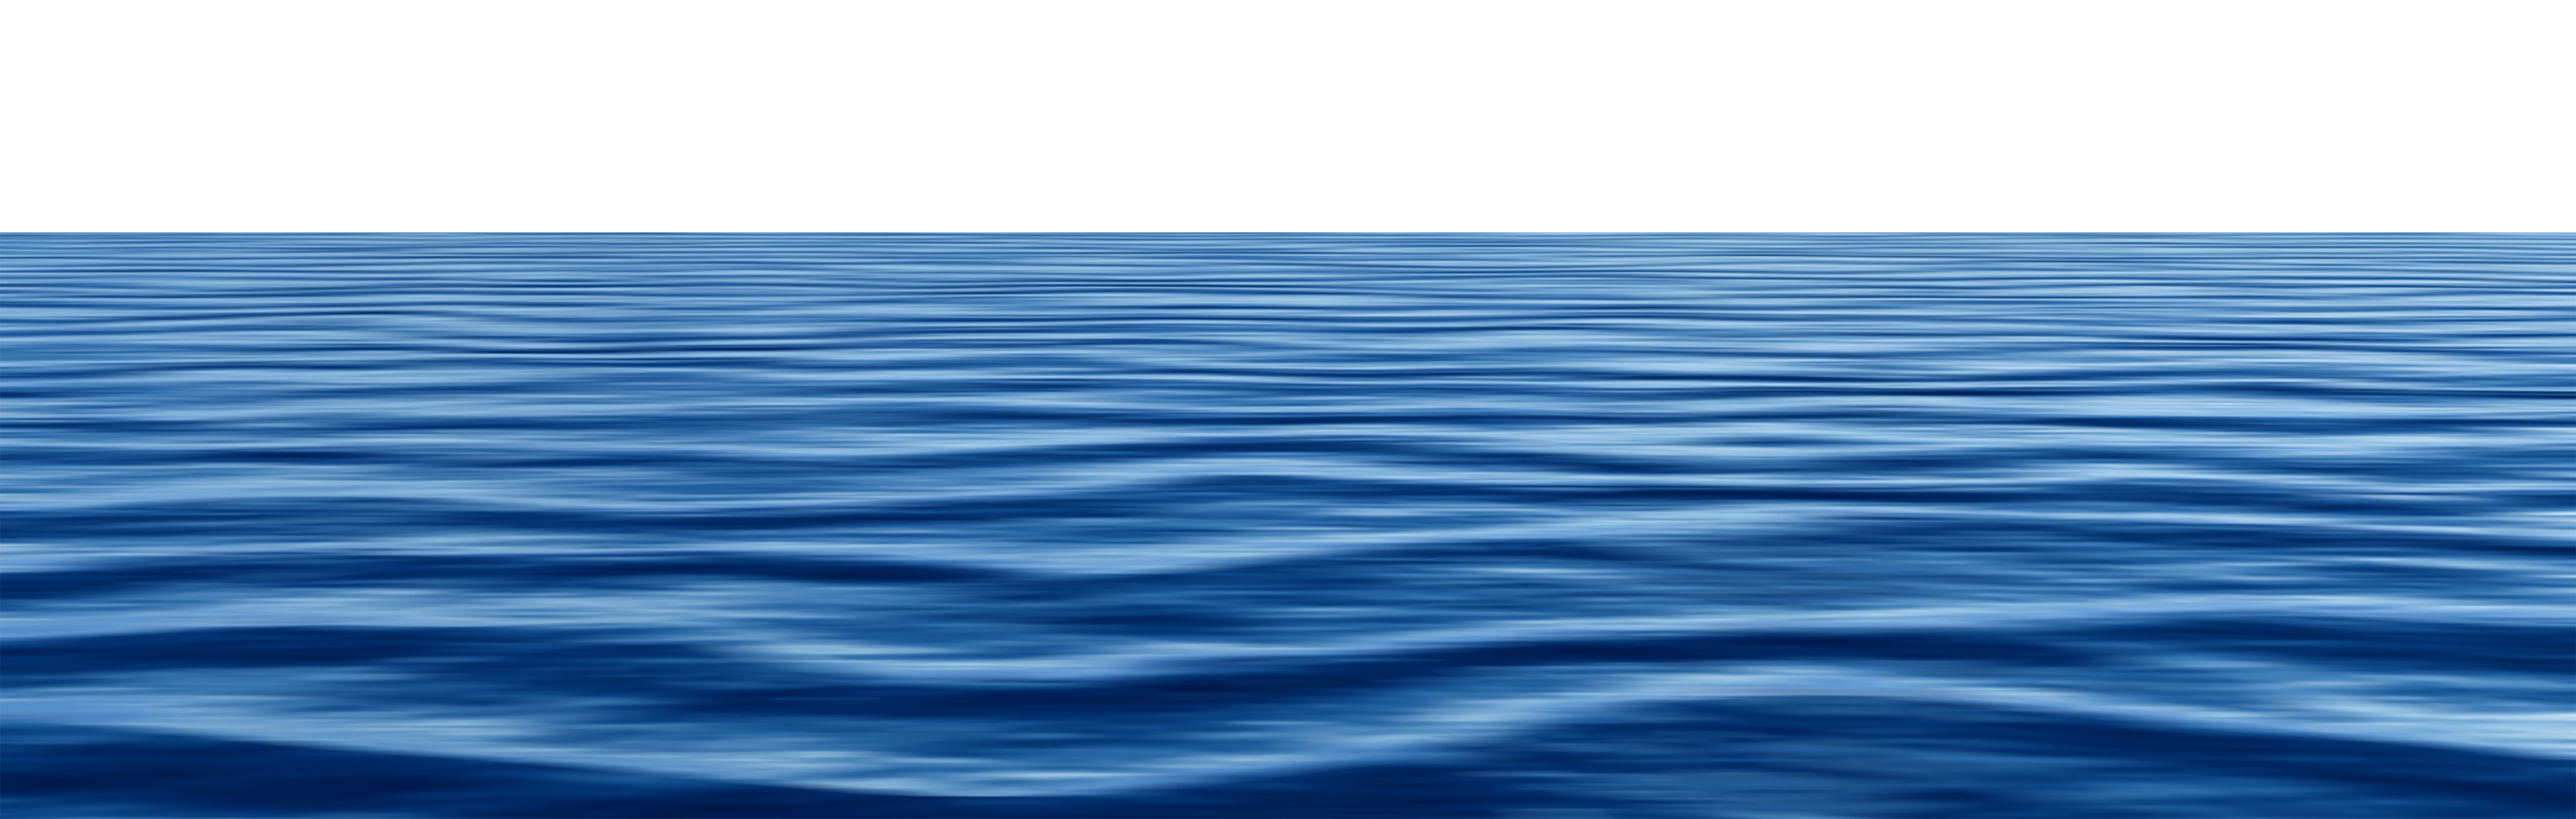 Sea PNG images Download